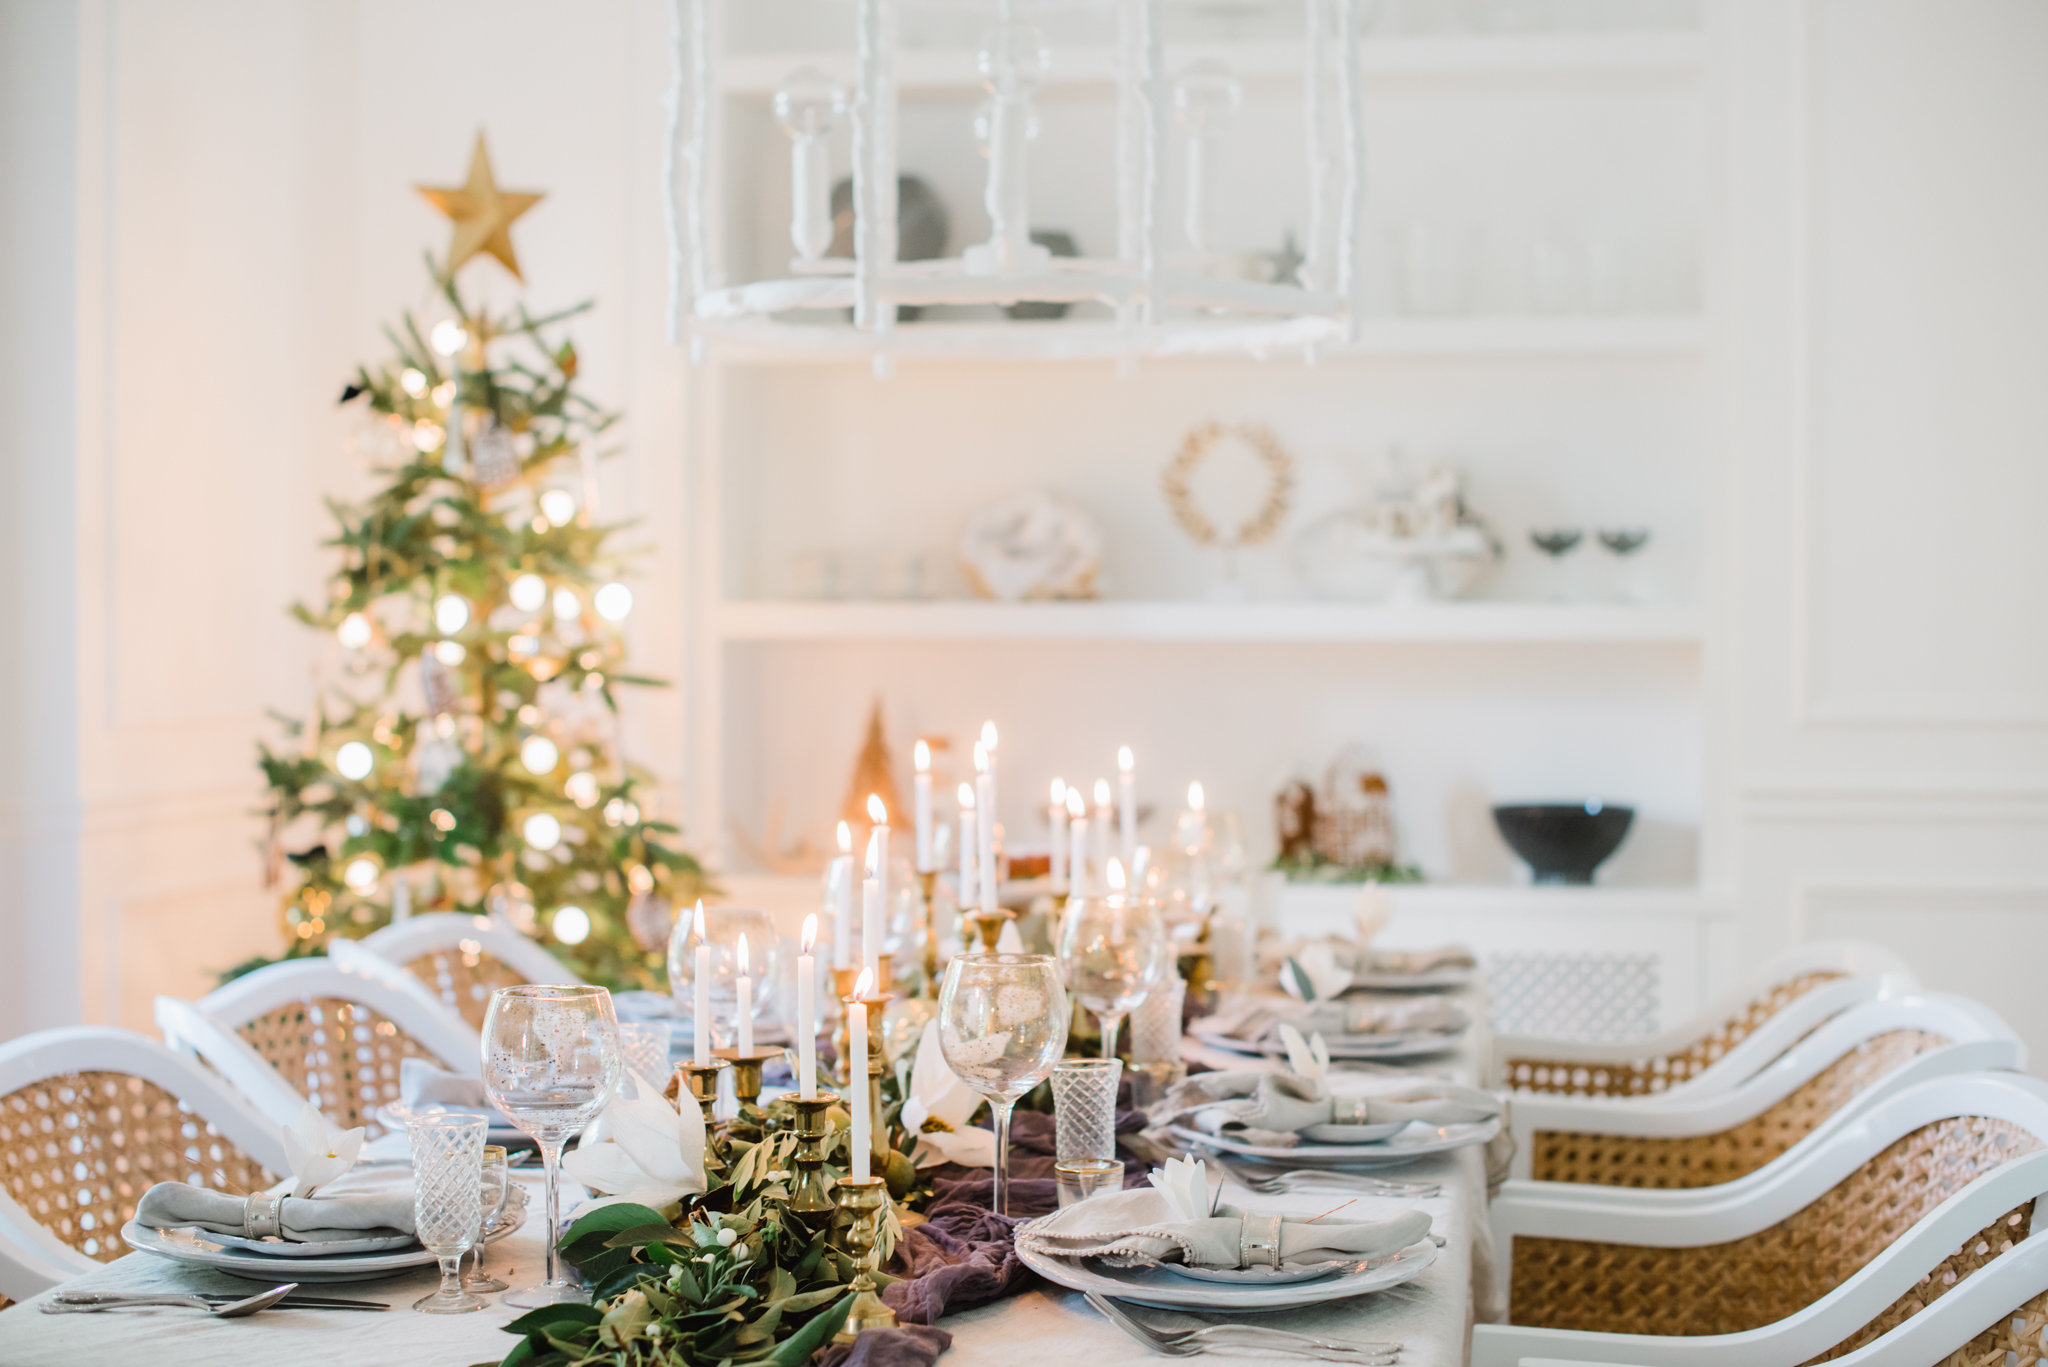 Our Christmas Style at Home spread!